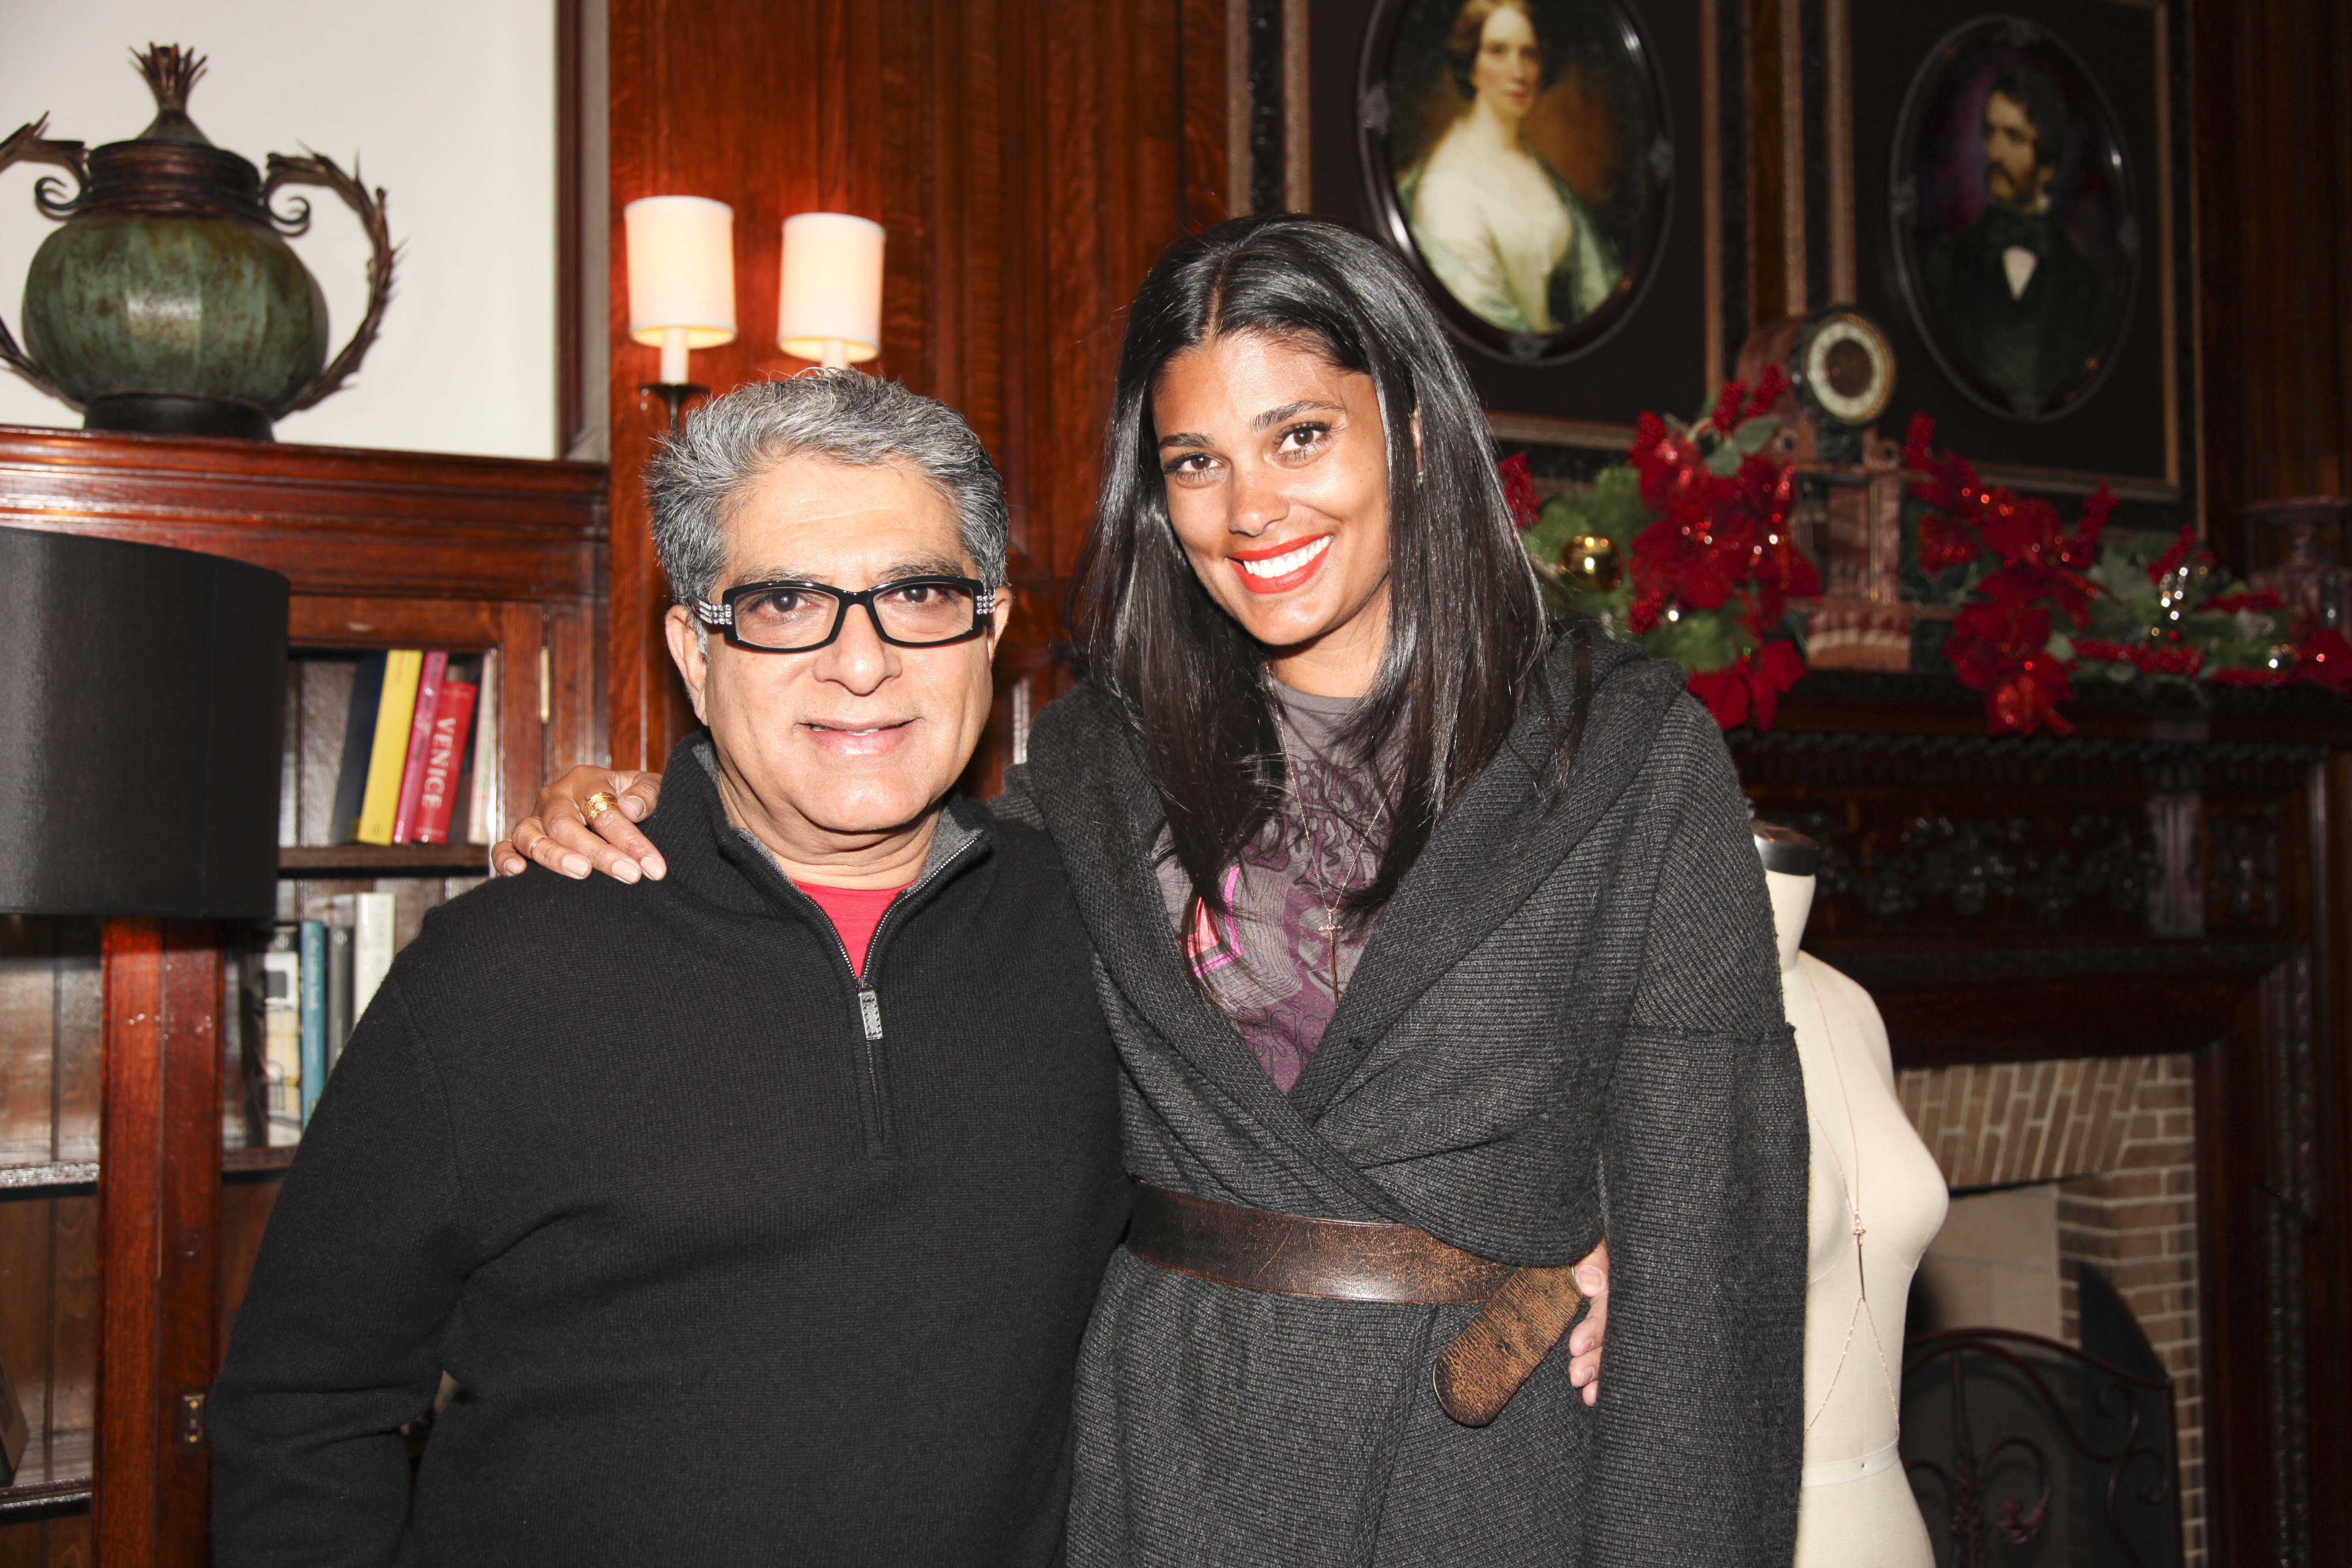 Top 9 at 9: Rachel Roy & Deepak Chopra Collaborate for a Cause